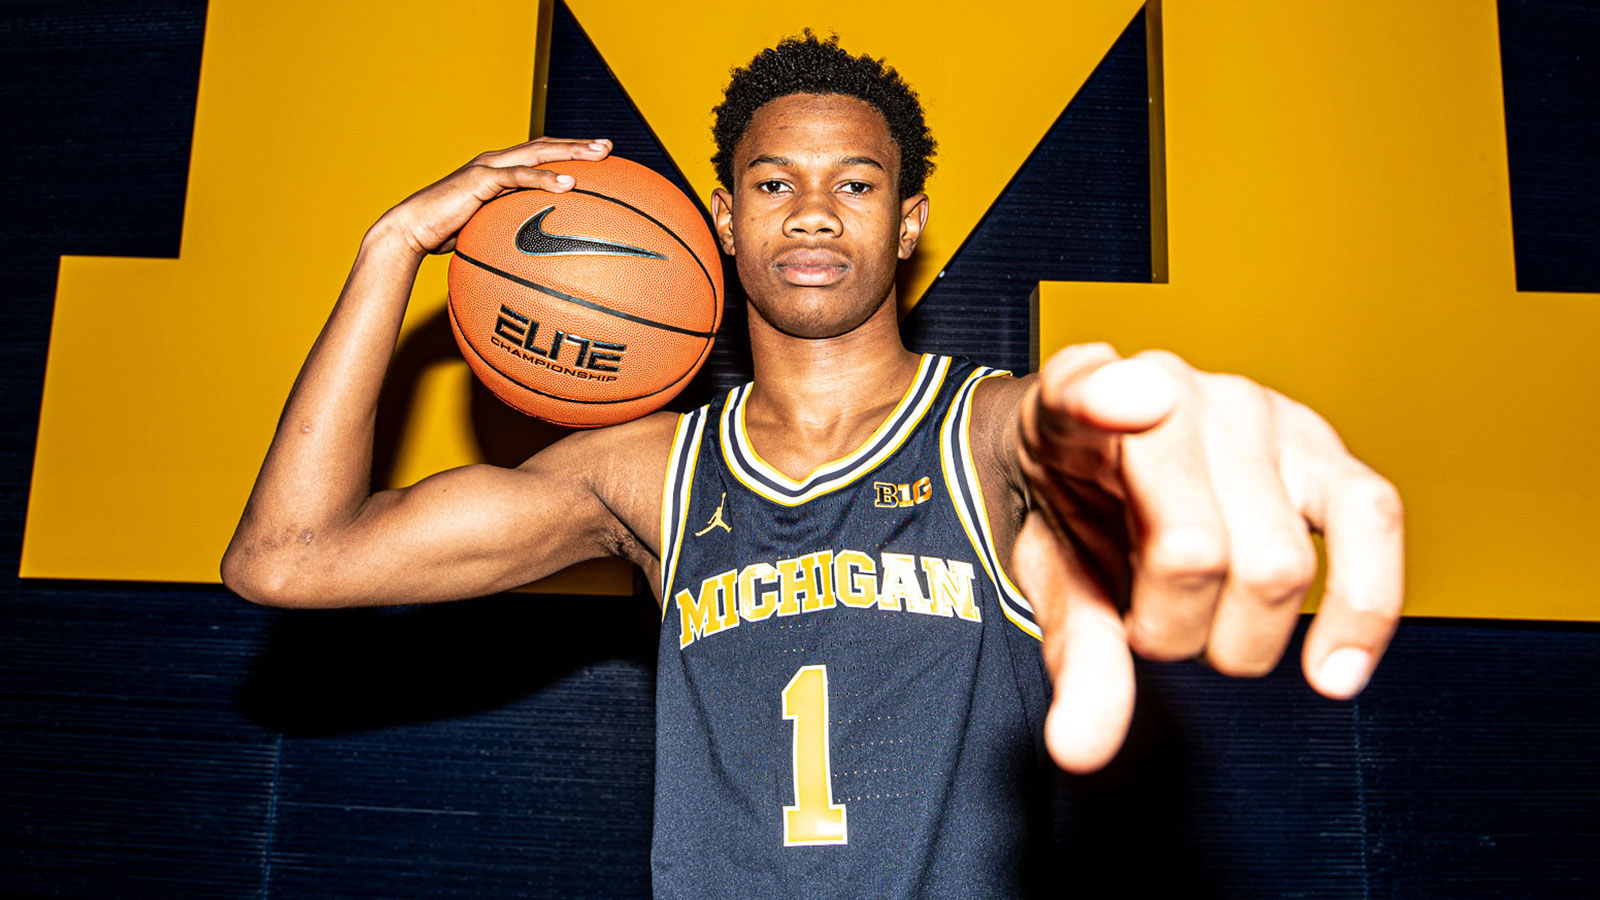 Jackson Joins Michigan Men S Basketball With Nli Signing For